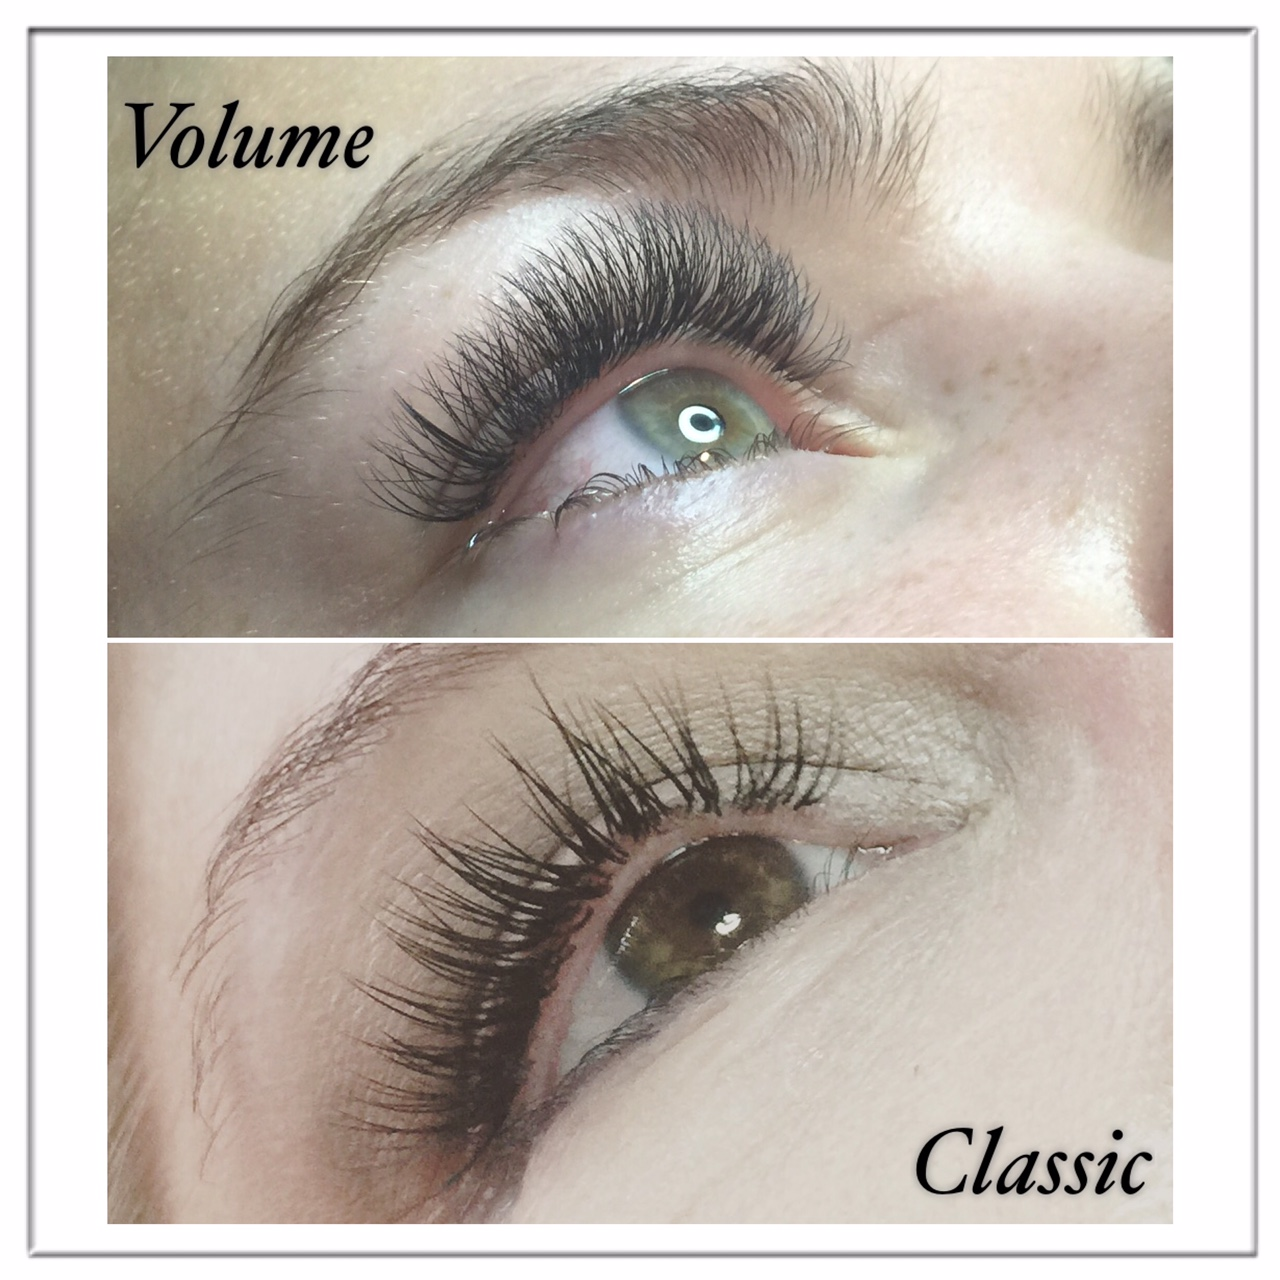 Every length, diameter, and curl is going to look completely different on each individual. In this picture you can see that the volume lashes up top are much more fluffy and soft and the classic lashes look more like mascara.